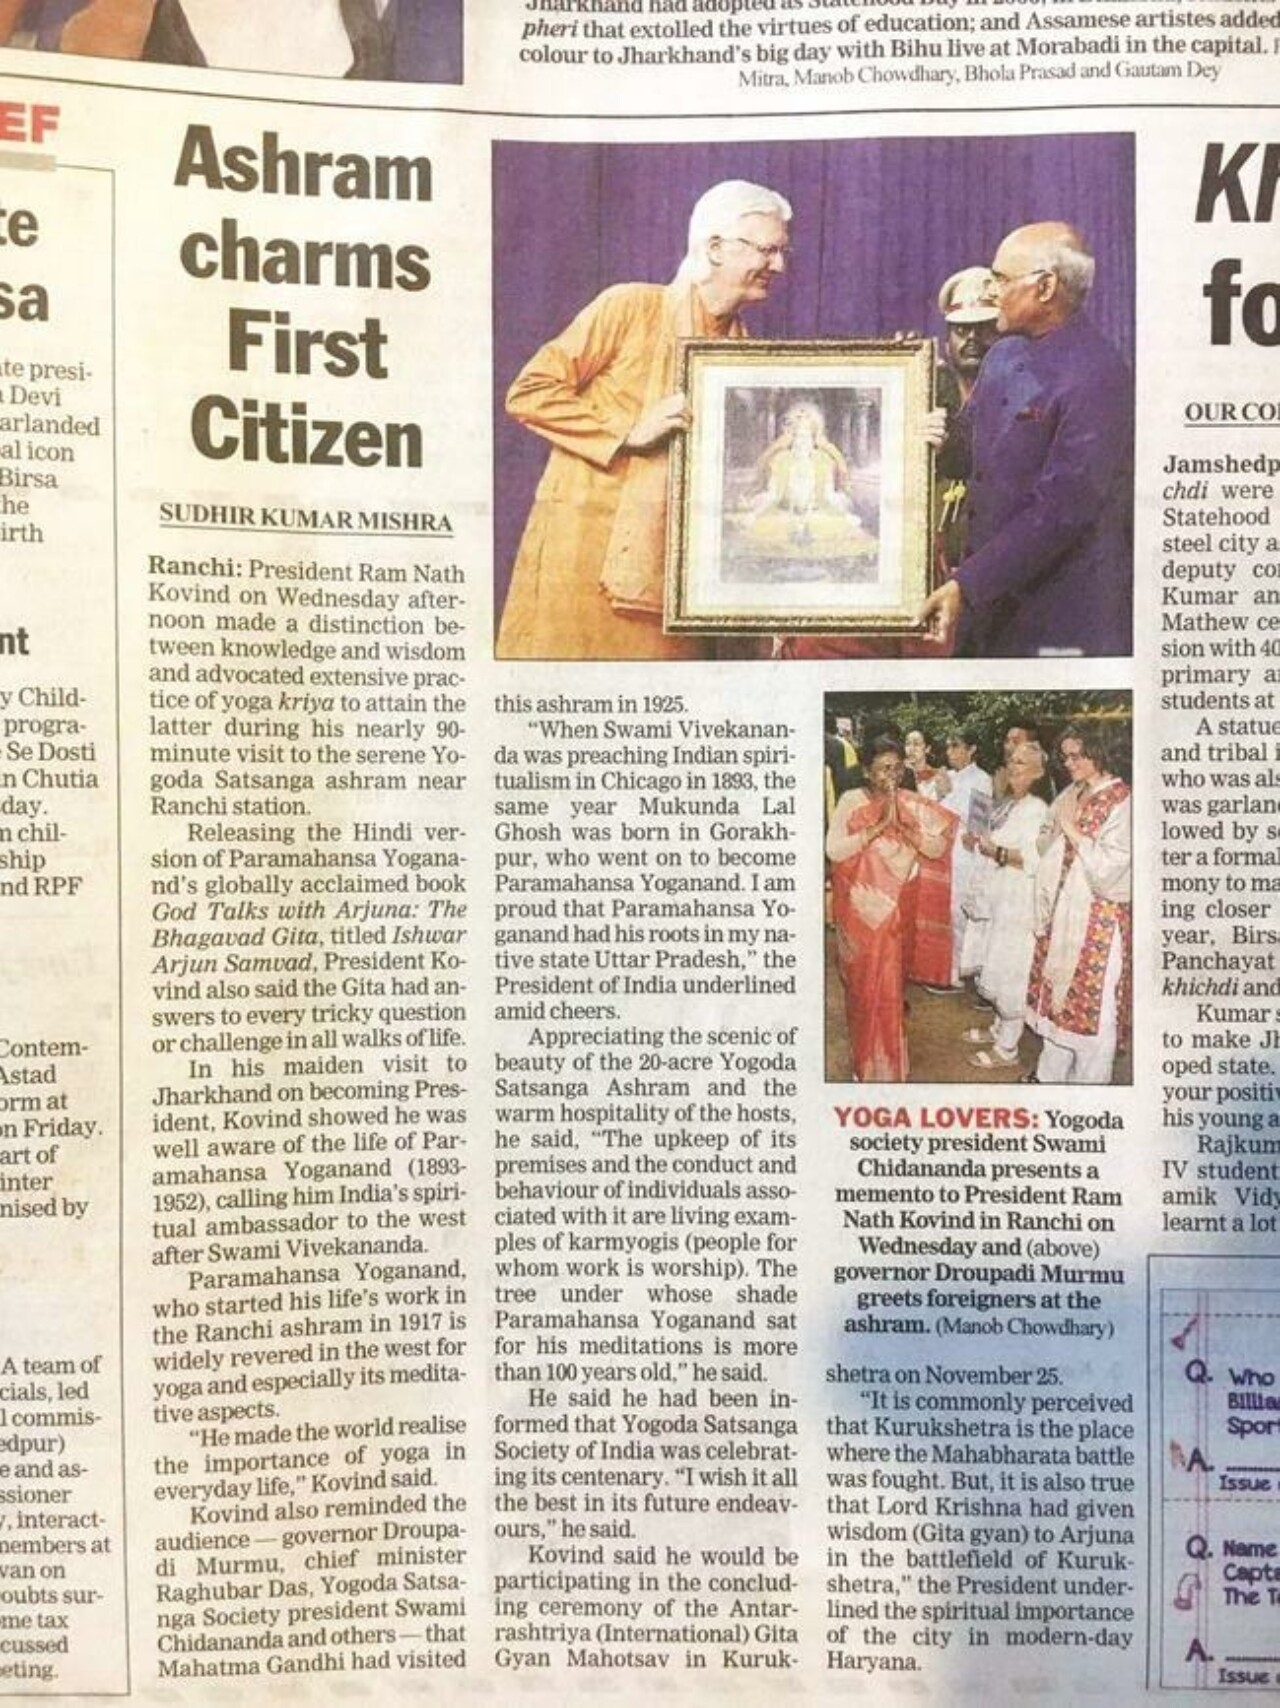 Brother Chidananda Visit To The Ranchi Ashram By The President Of India